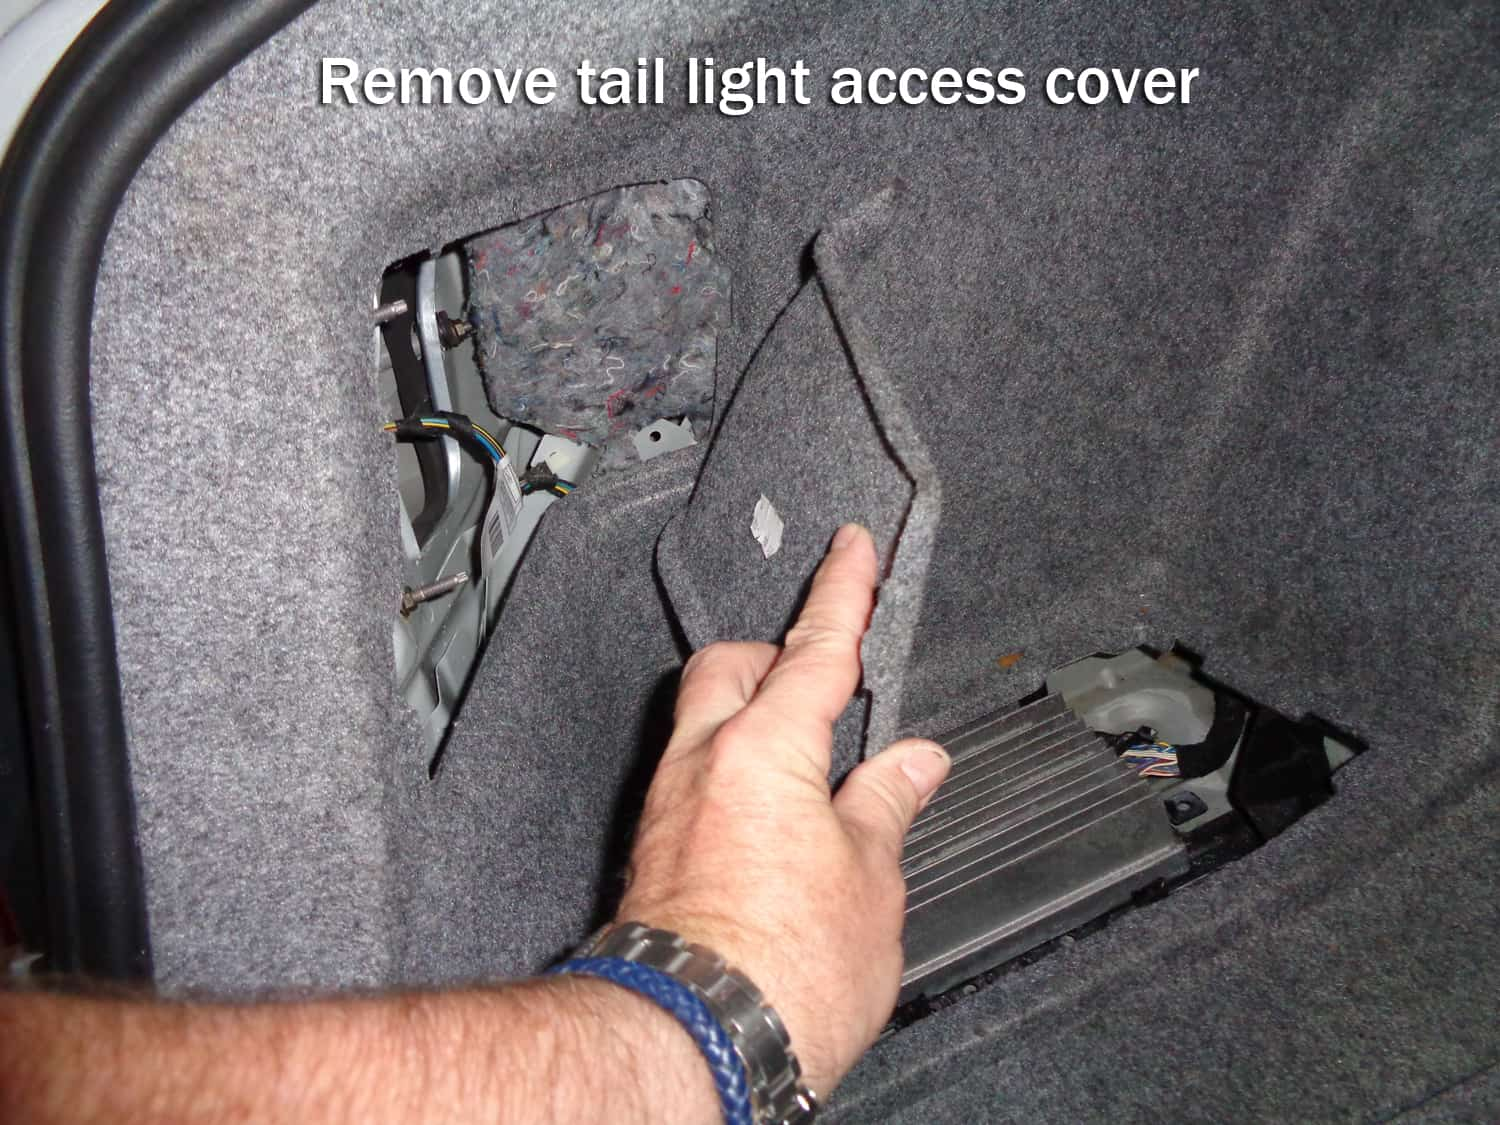 bmw e90 amplifier water damage repair - remove taillight access cover